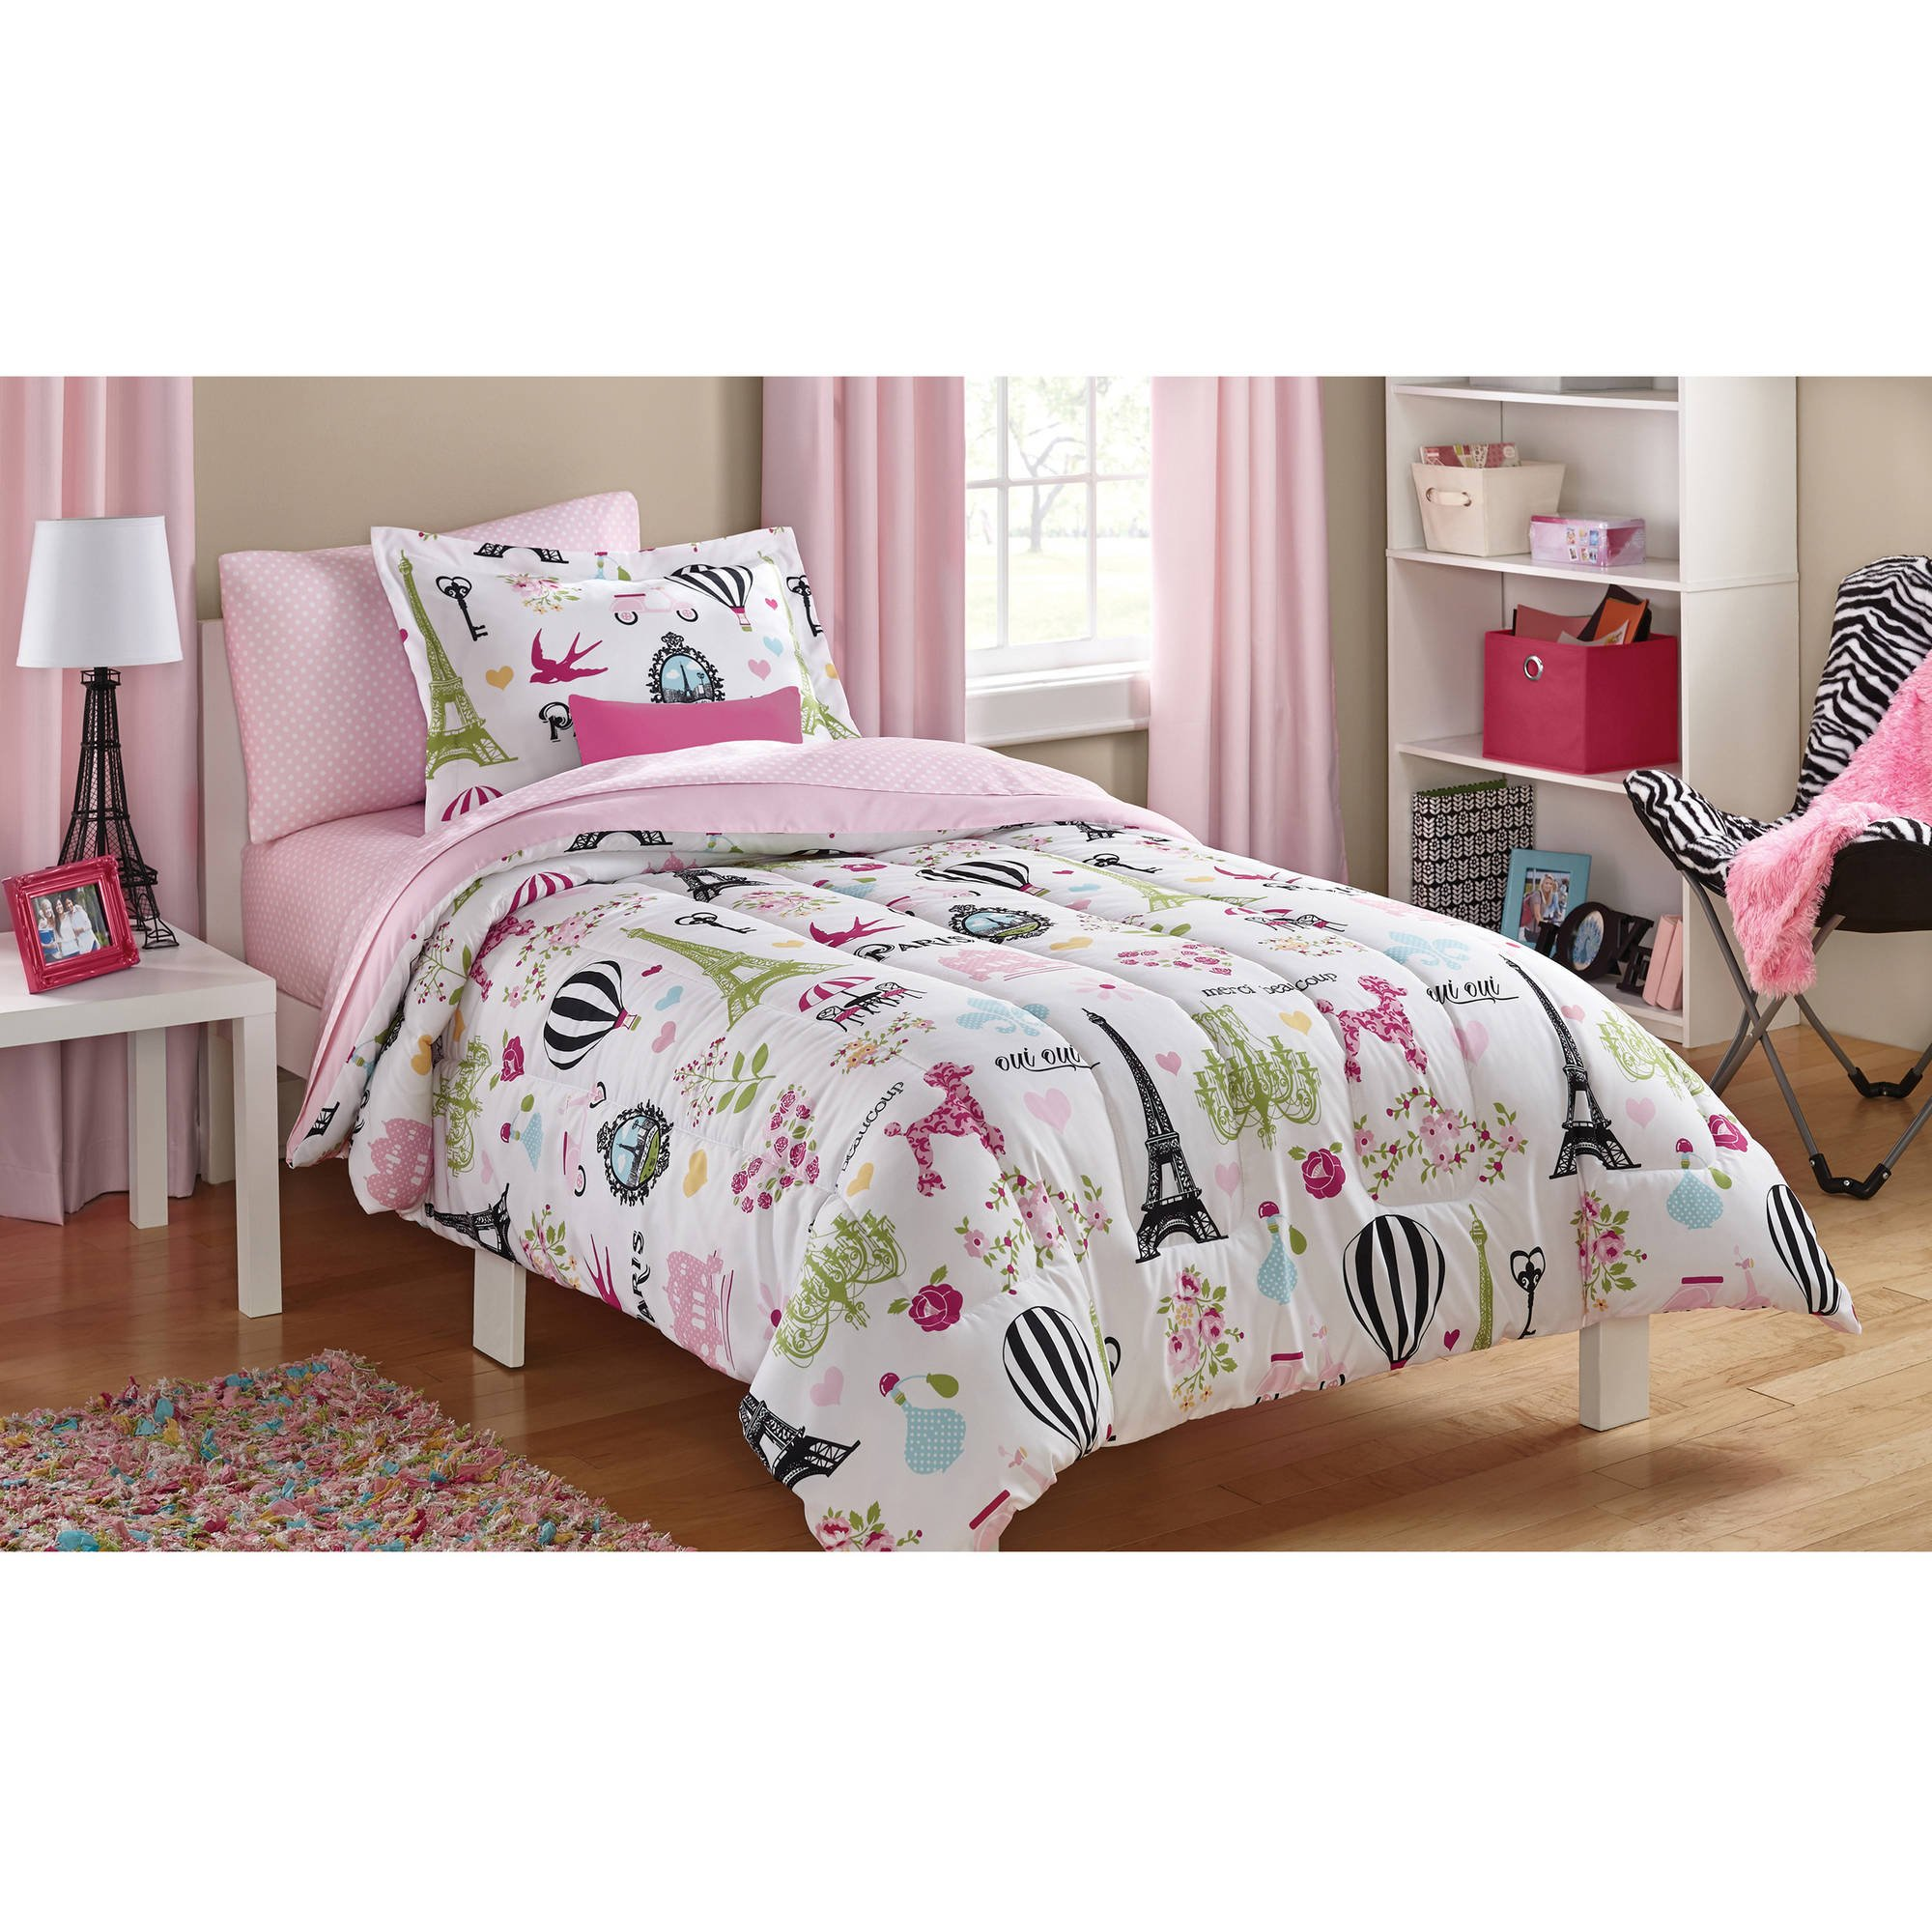 5 Piece Girls Pink Multi I Love Paris Comforter Twin Set with Sheets, All Over Girly France Inspired Bedding, Pretty Eiffel Tower Flowers Hot Air Balloon Poodle Dog Themed Pattern, Blue Green Yellow